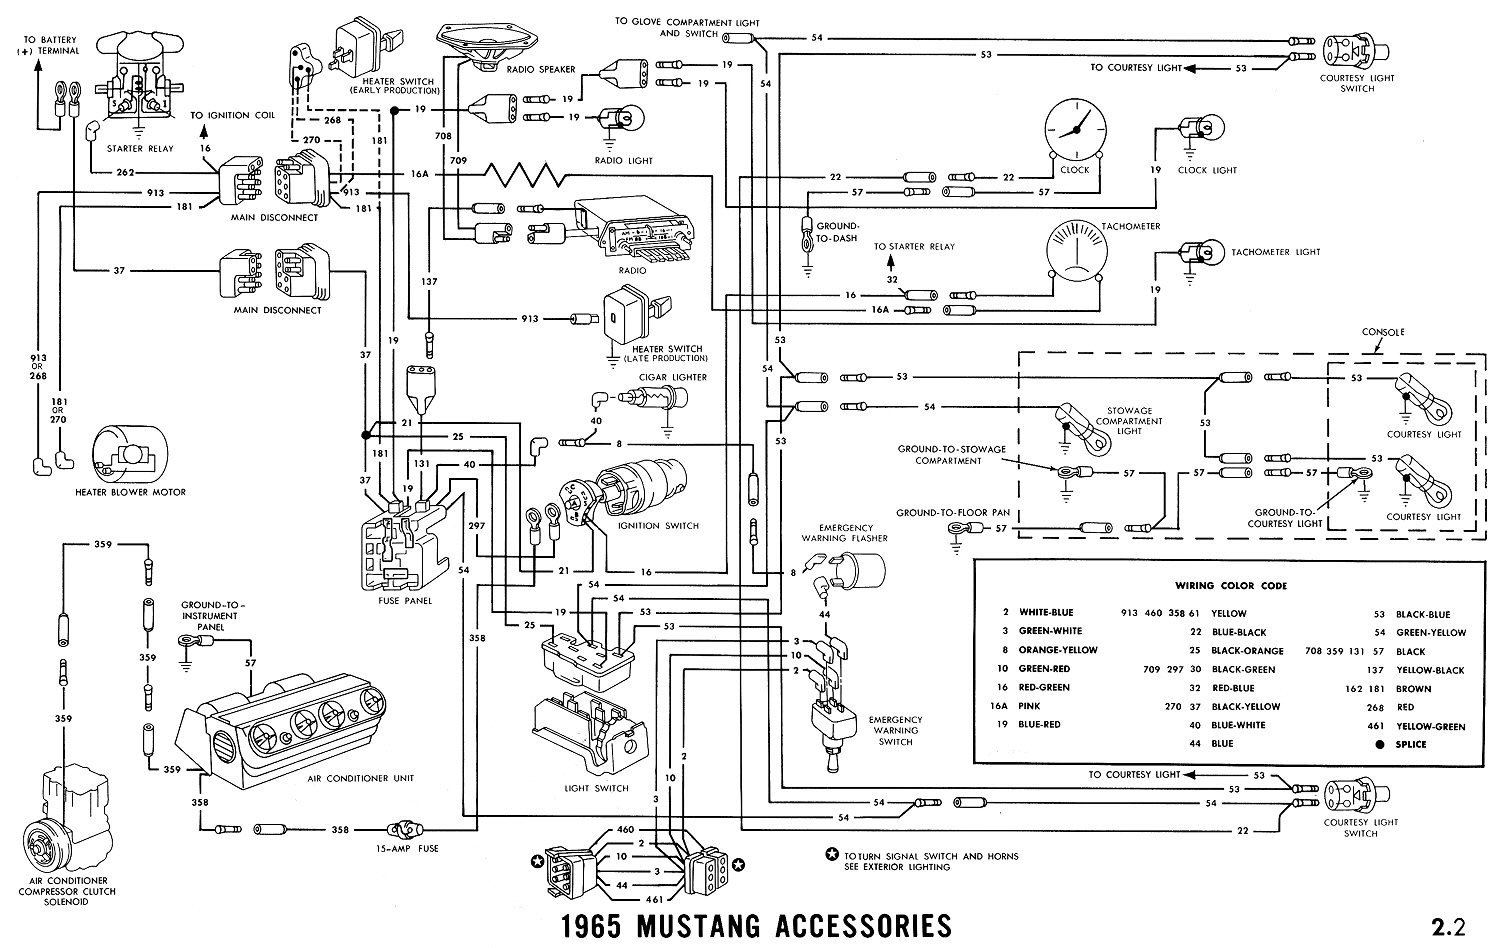 1965i 1965 mustang wiring diagrams average joe restoration 1967 mustang turn signal wiring diagram at cos-gaming.co